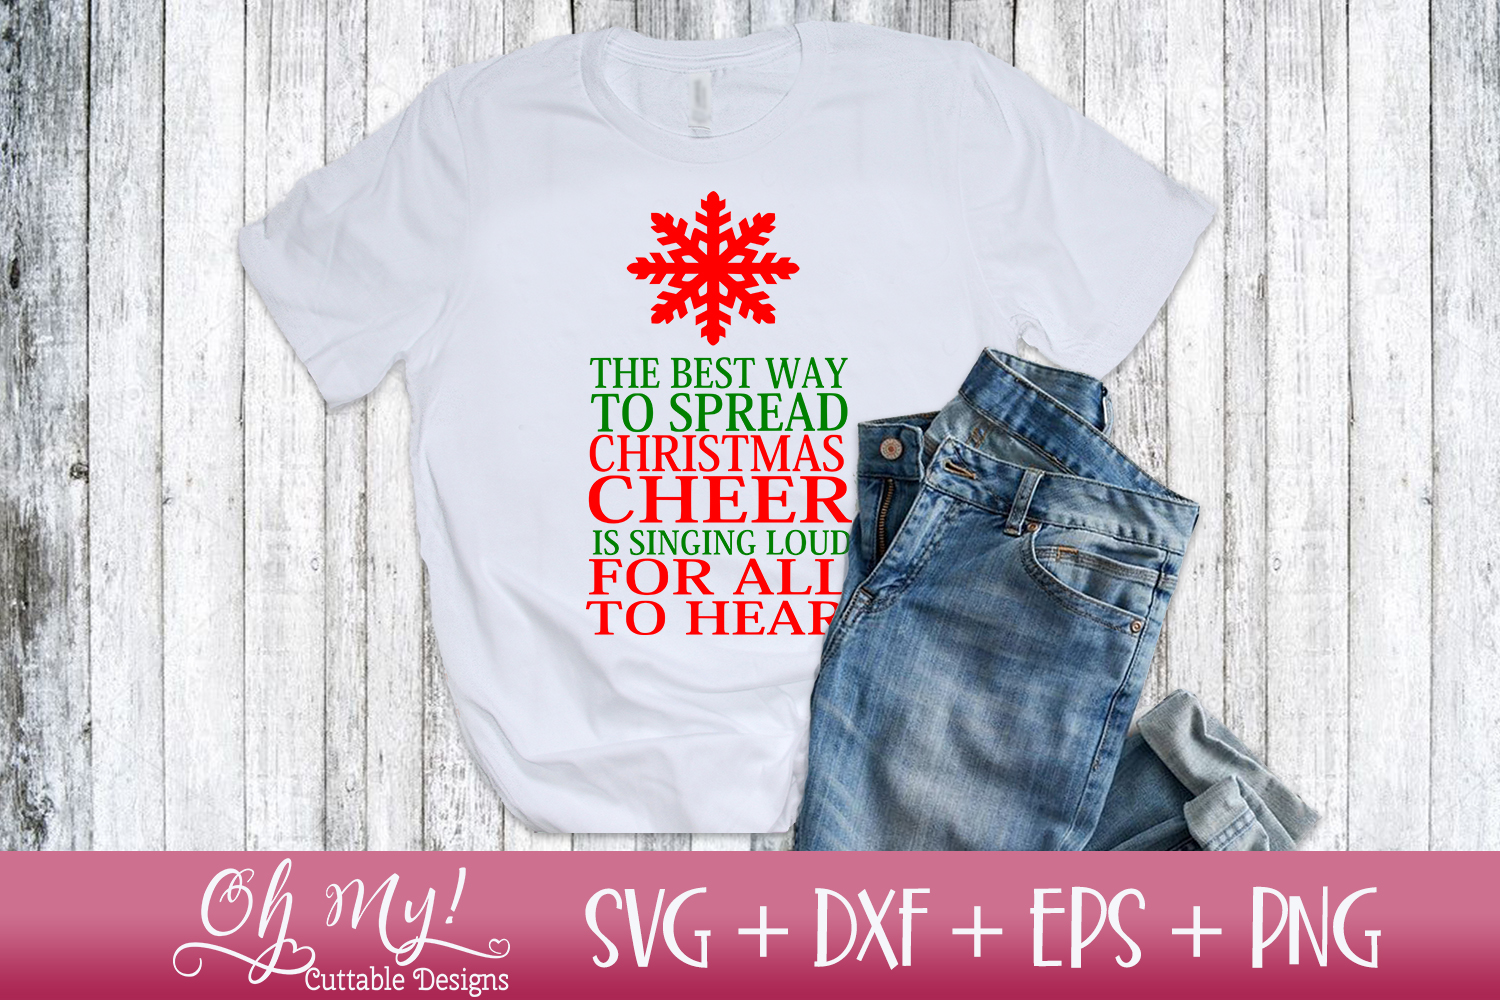 Spread Christmas Cheer - SVG DXF EPS PNG Cutting File example image 2